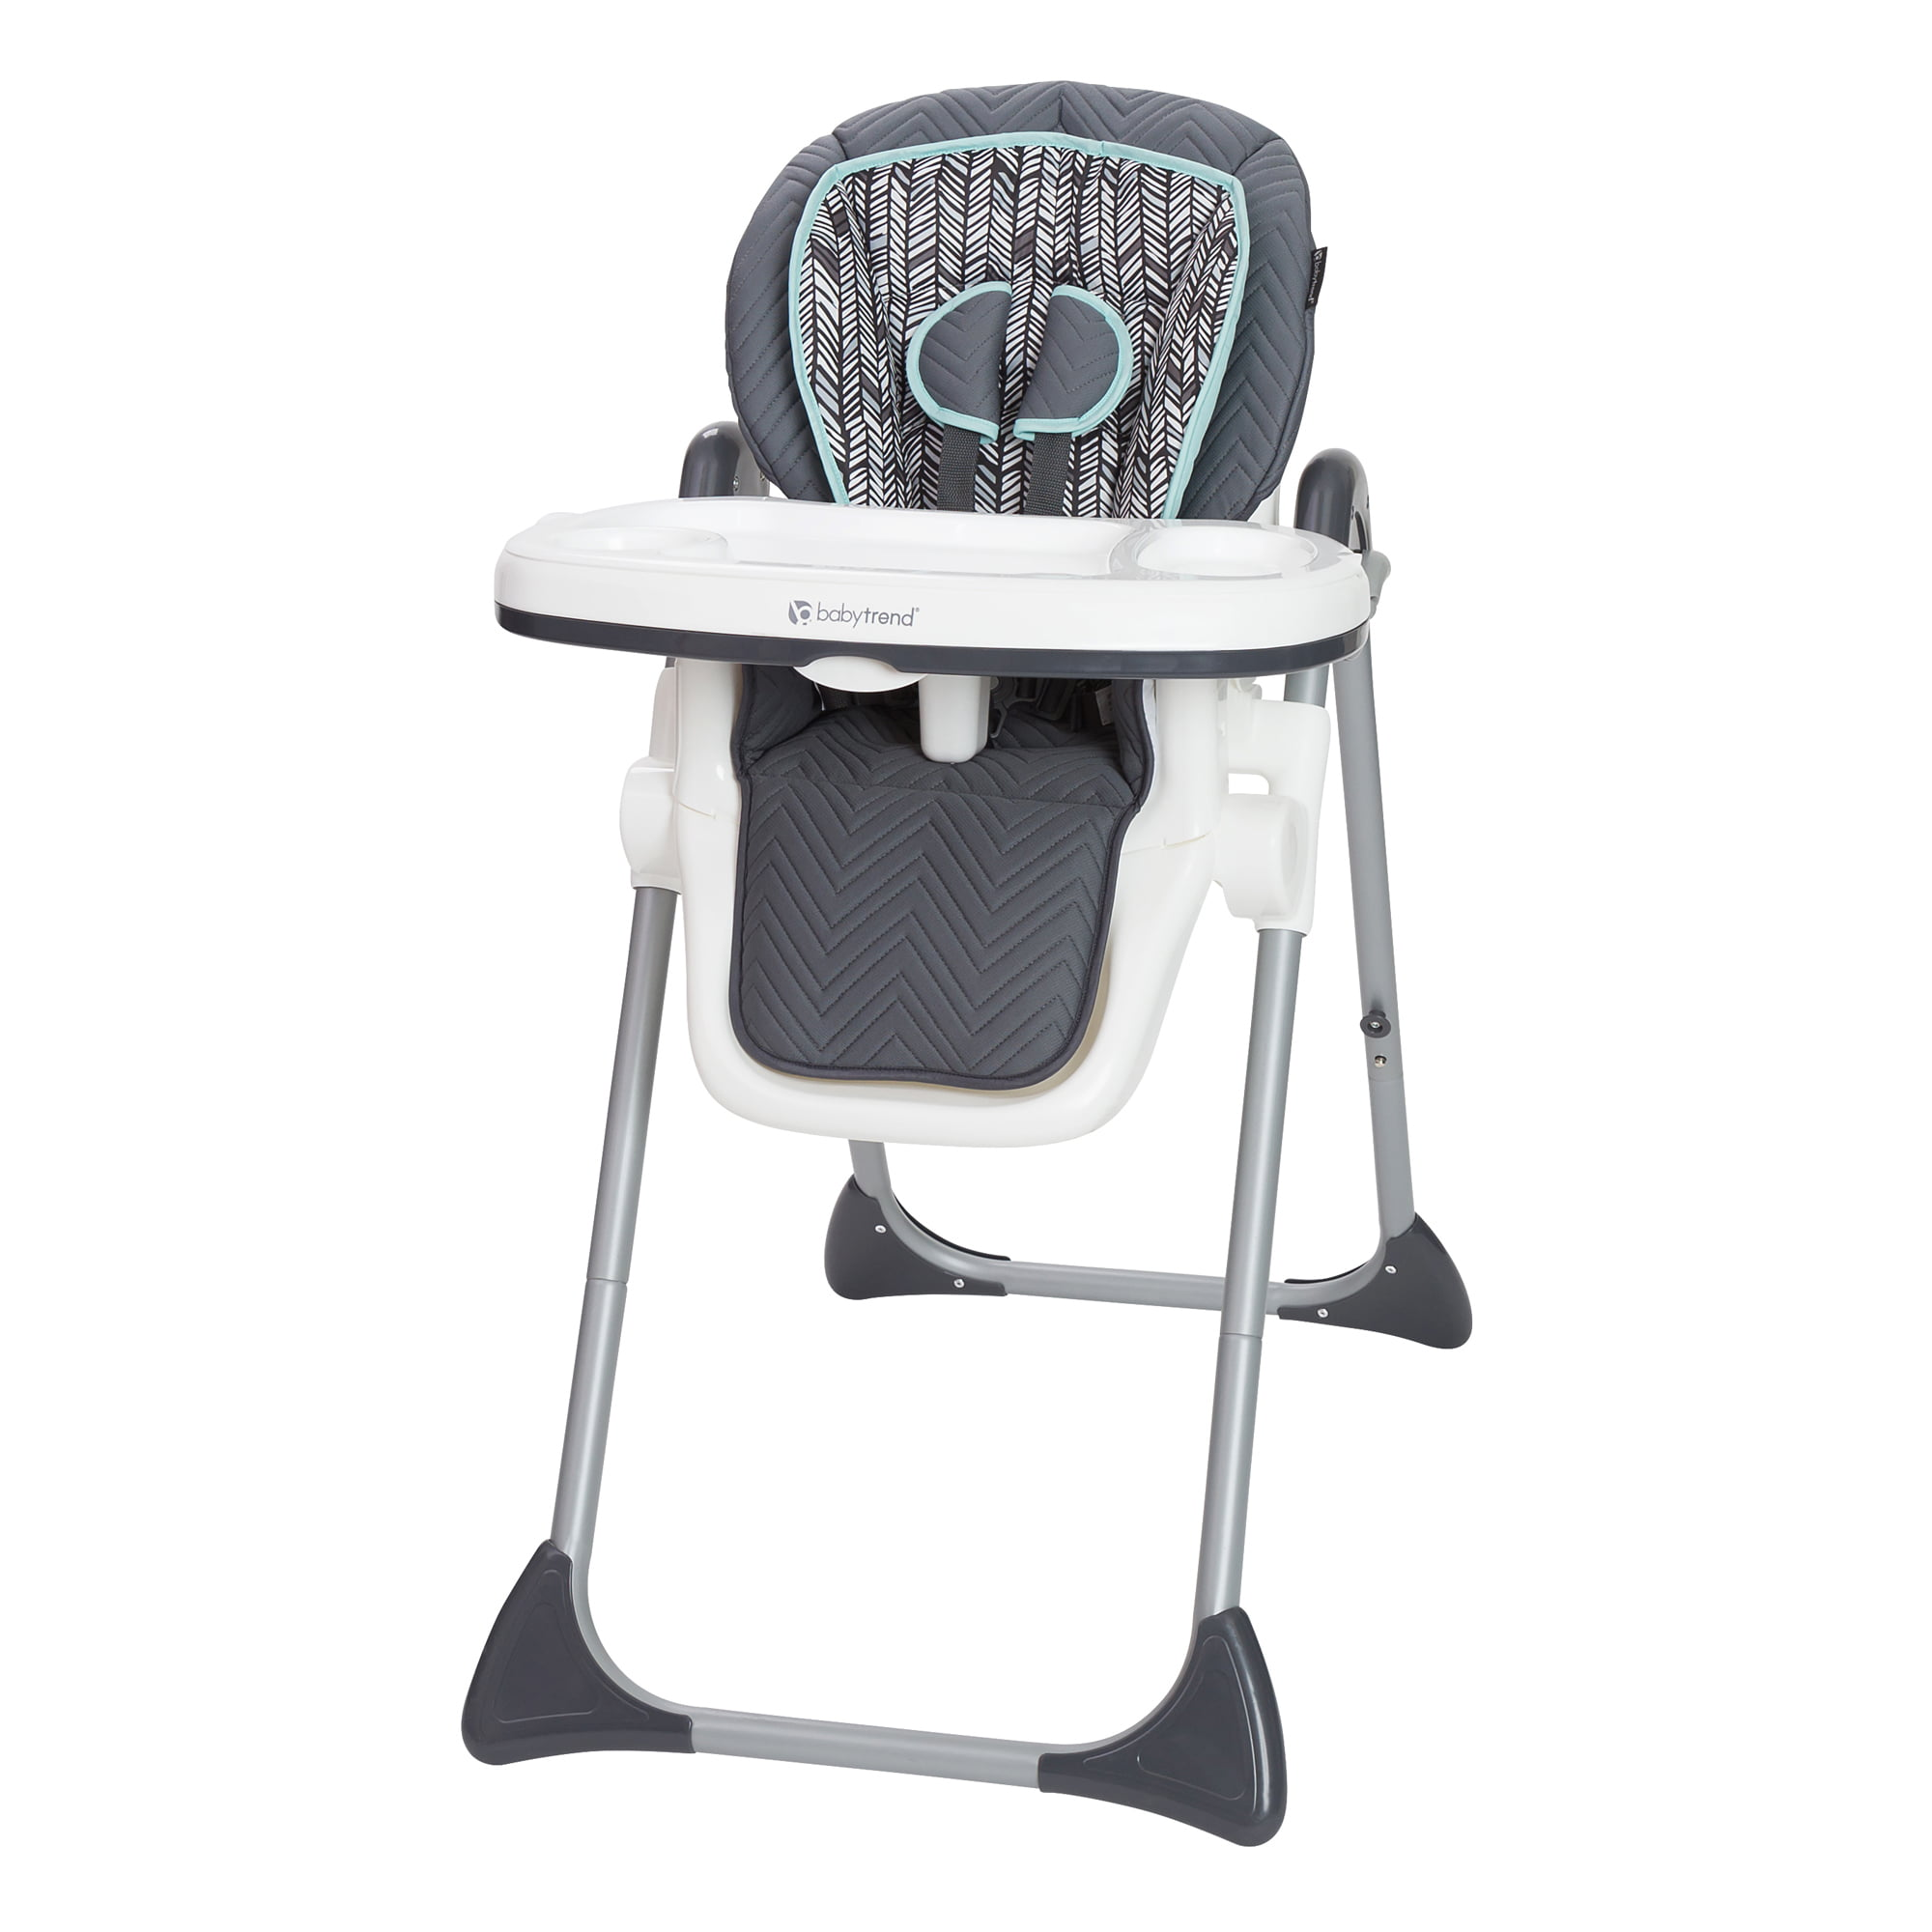 Baby Trend Tot Spot 3-in-1 High Chair Ziggy by Baby Trend